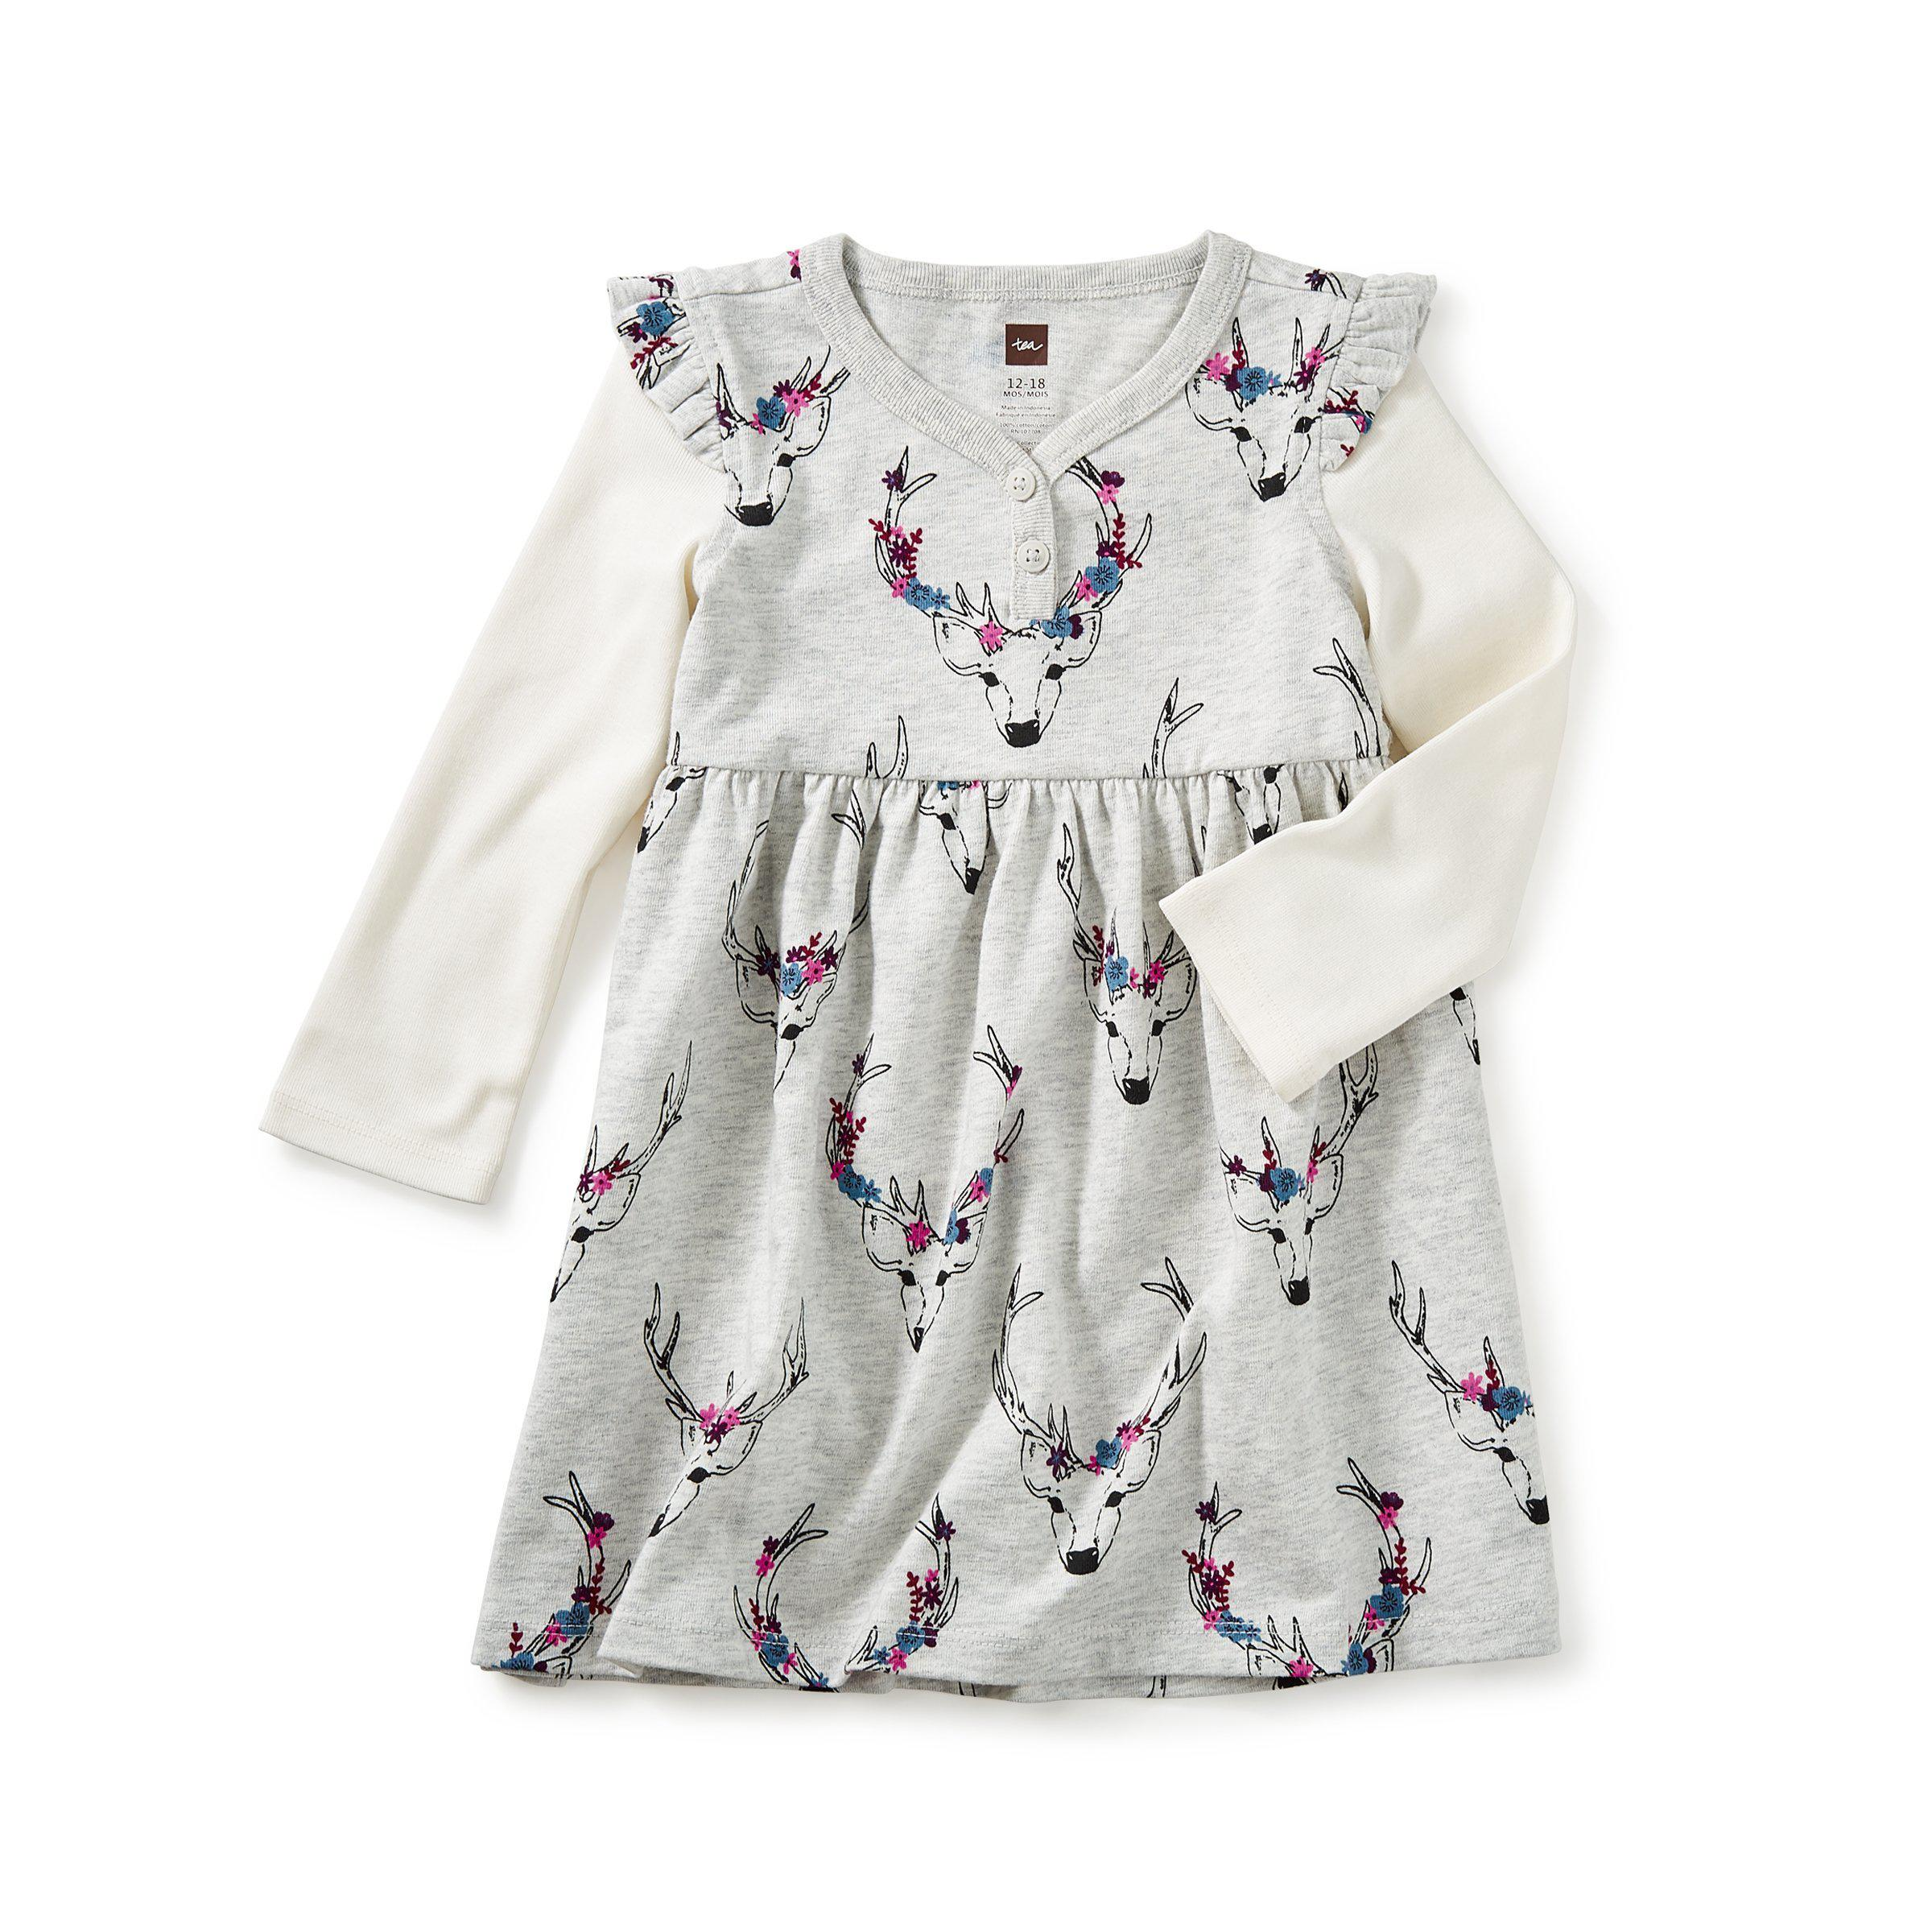 ad0292a82b640 Oh Deer Baby Button Neck Dress-Baby Girl Apparel - Dresses-Tea Collection-